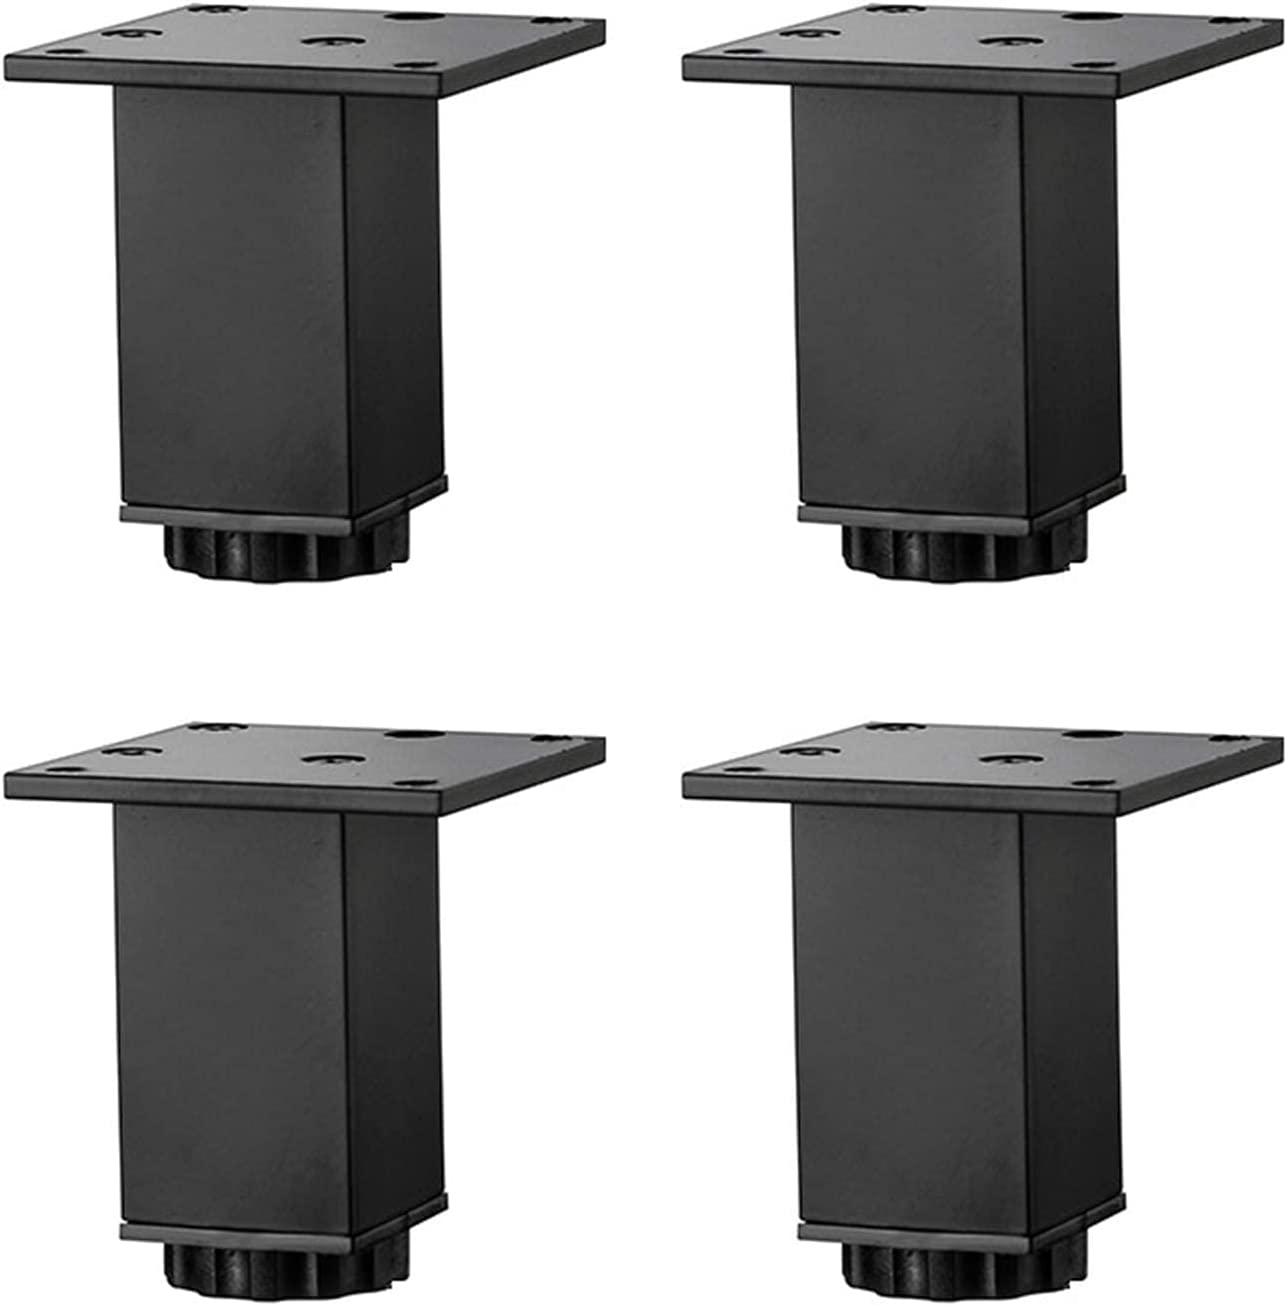 Metal Furniture Feet Square Table Legs Aluminum Alloy Made Kitchen Wardrobe Feet Sofa Support Foot Coffee Table TV Stand Legs Bathroom Cabinet Replacement Legs, with Screws,4 Pcs,B